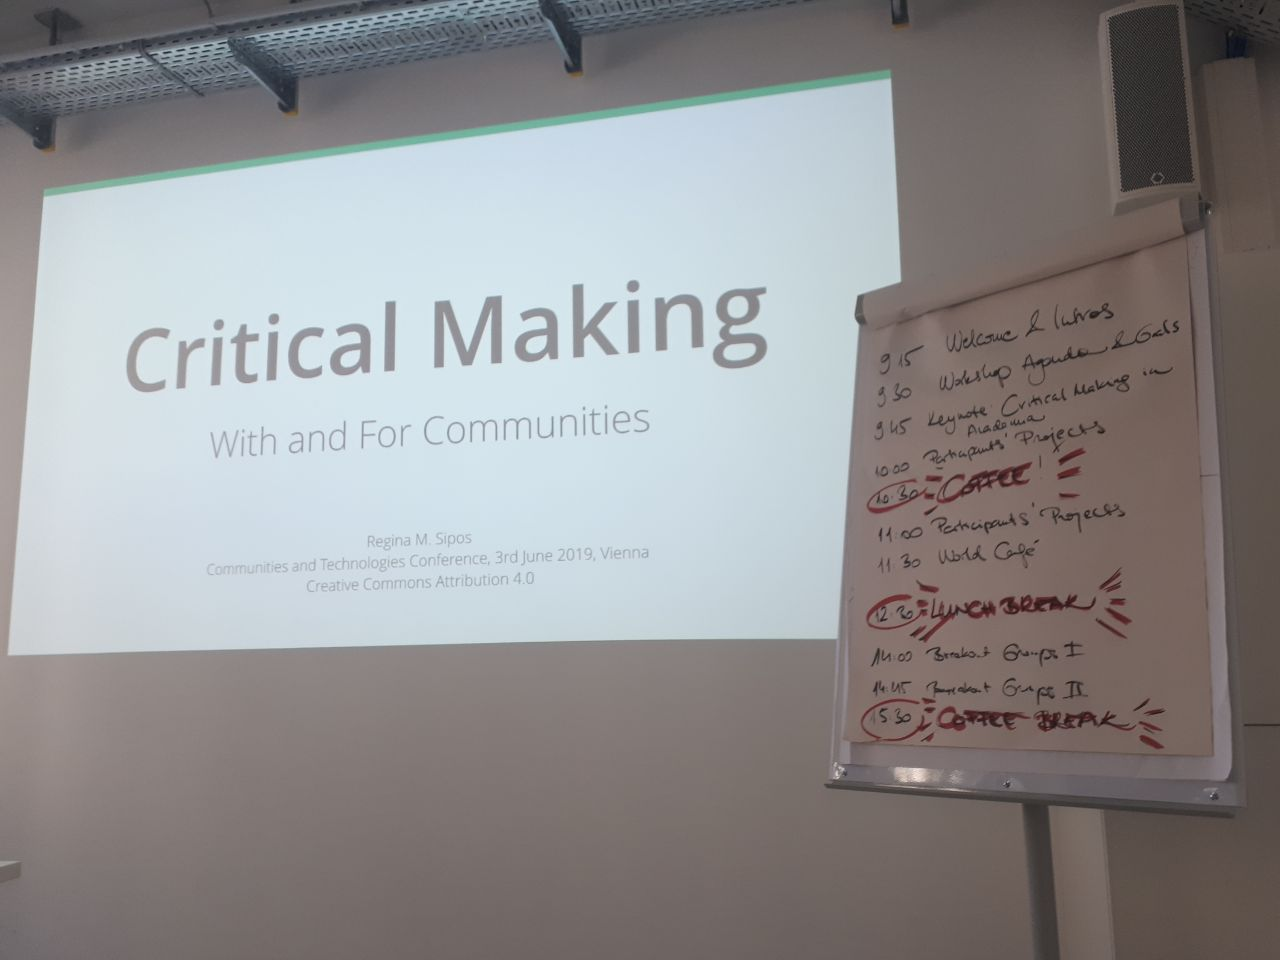 Critical Making with and for communities